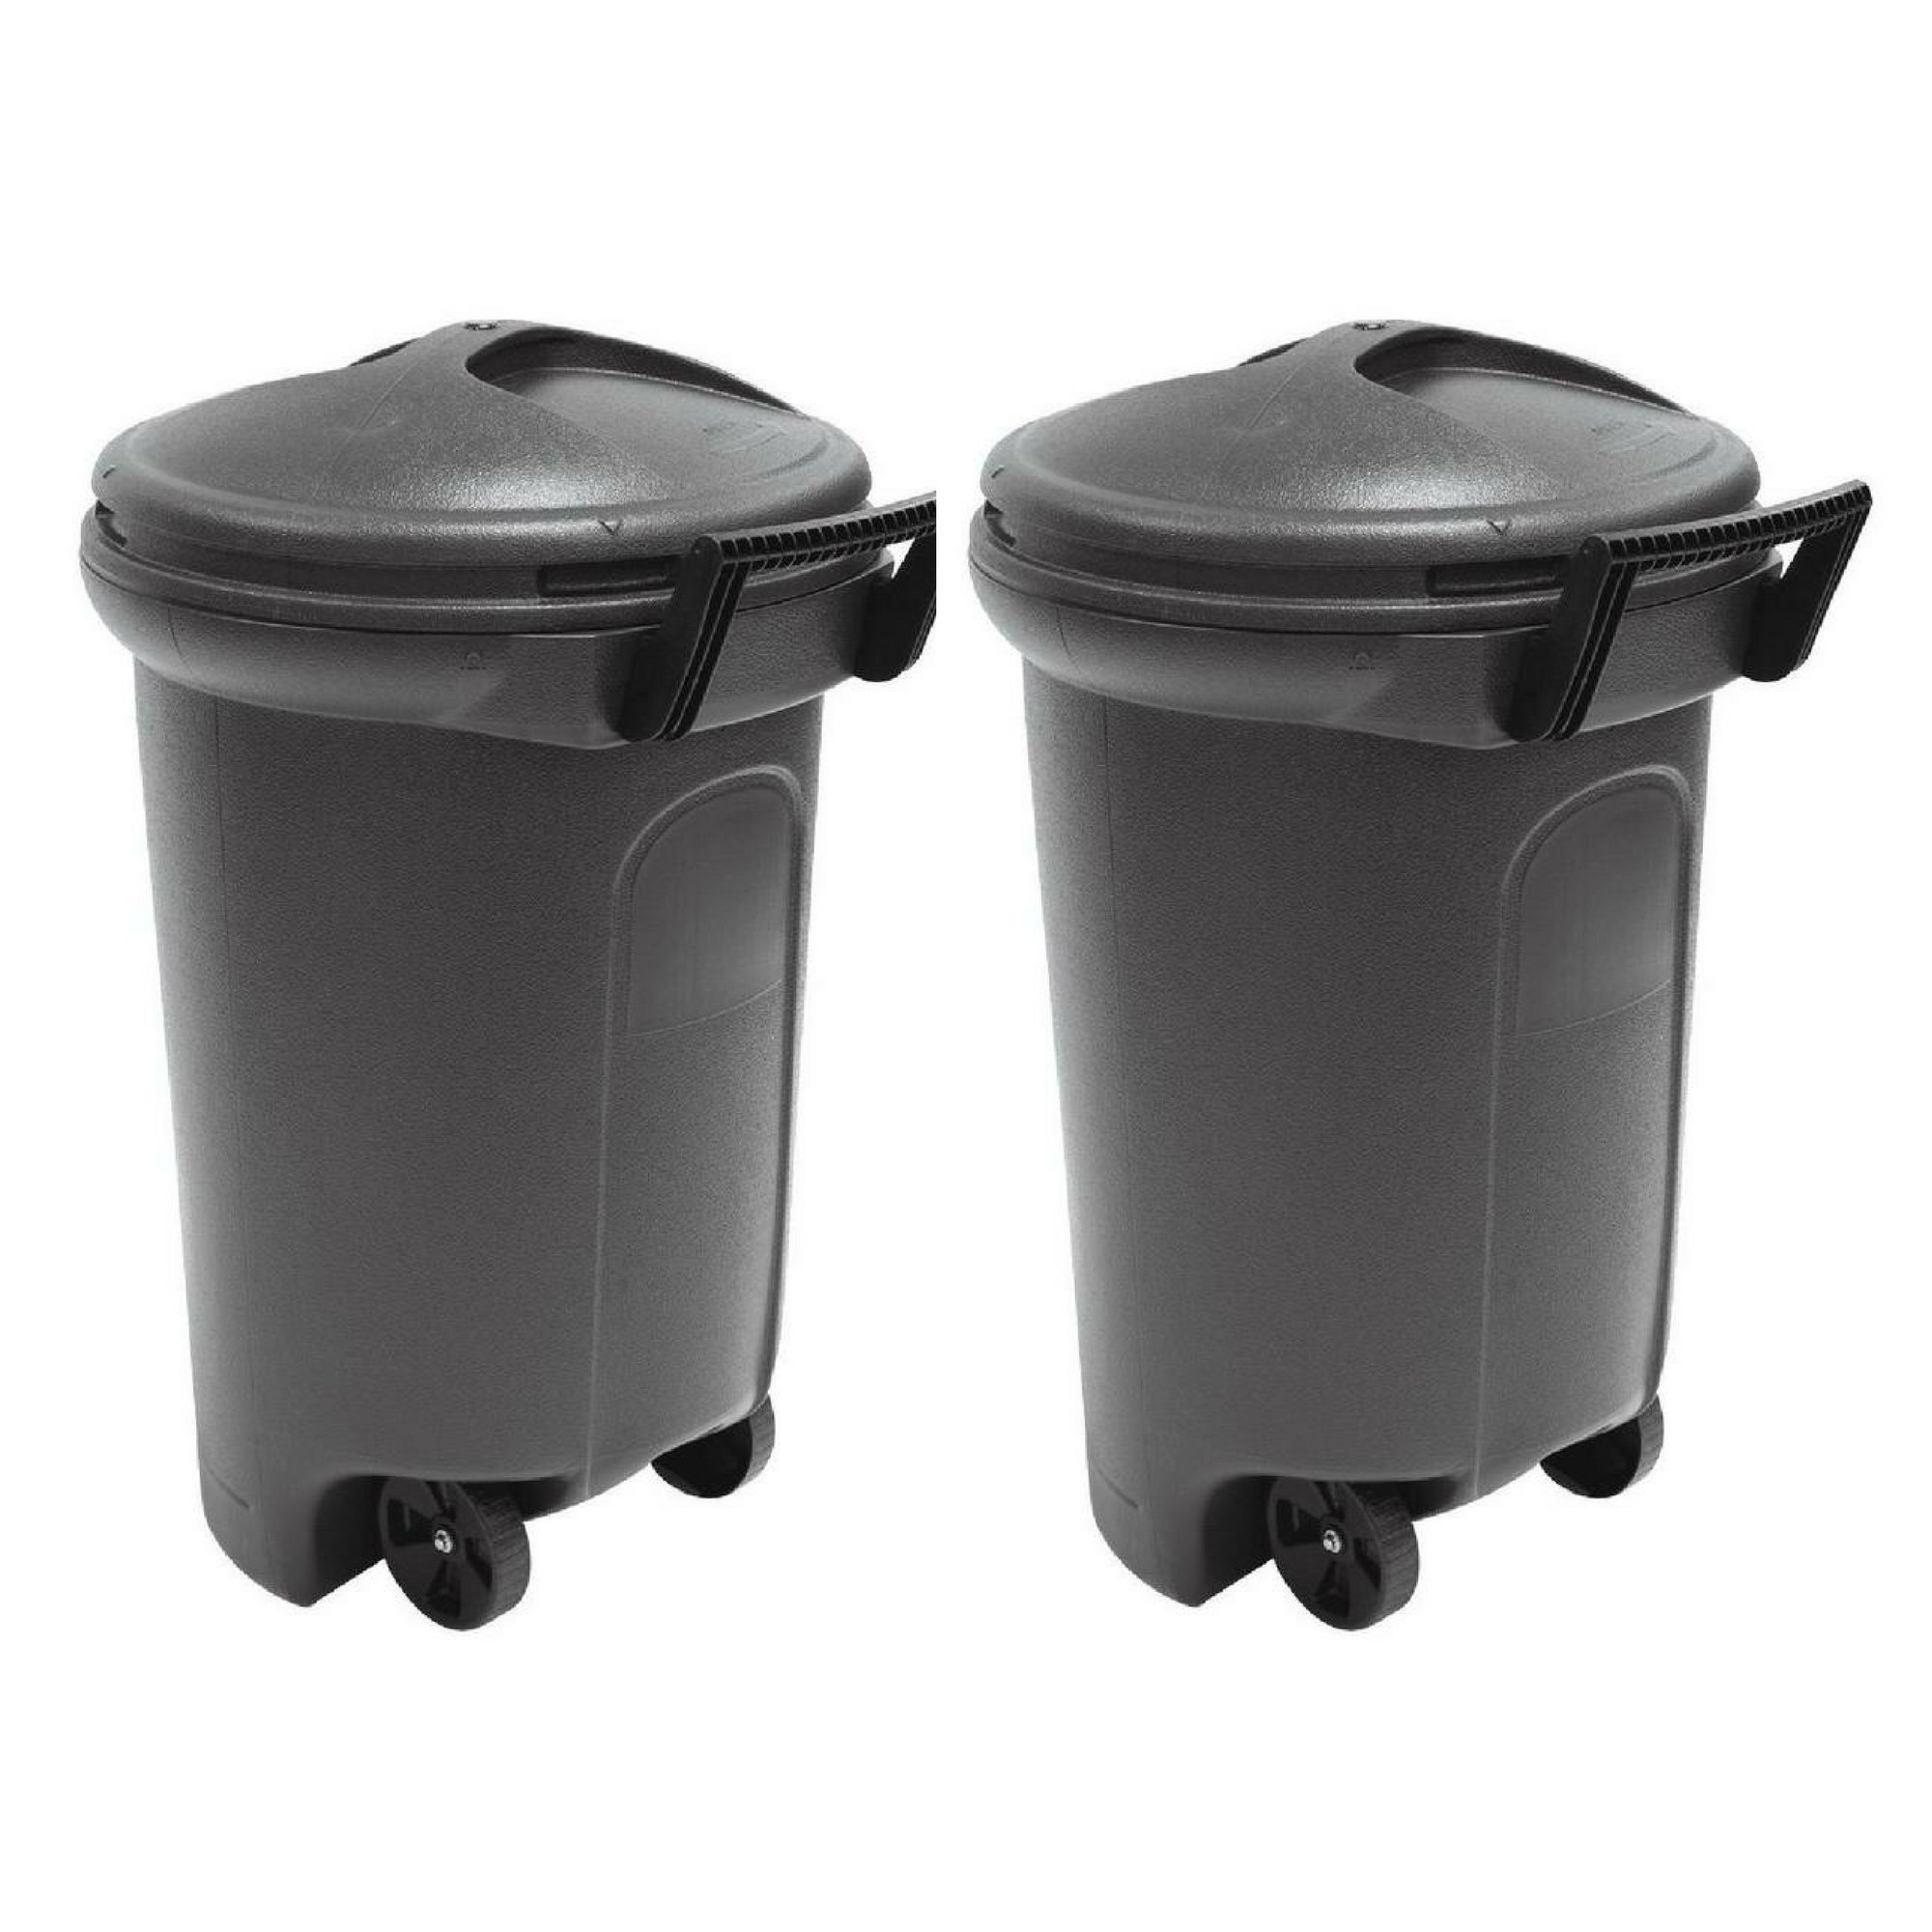 United Solutions 32 Gal. Wheeled Blow Molded Outdoor Trash Can in Black - 2 Pack